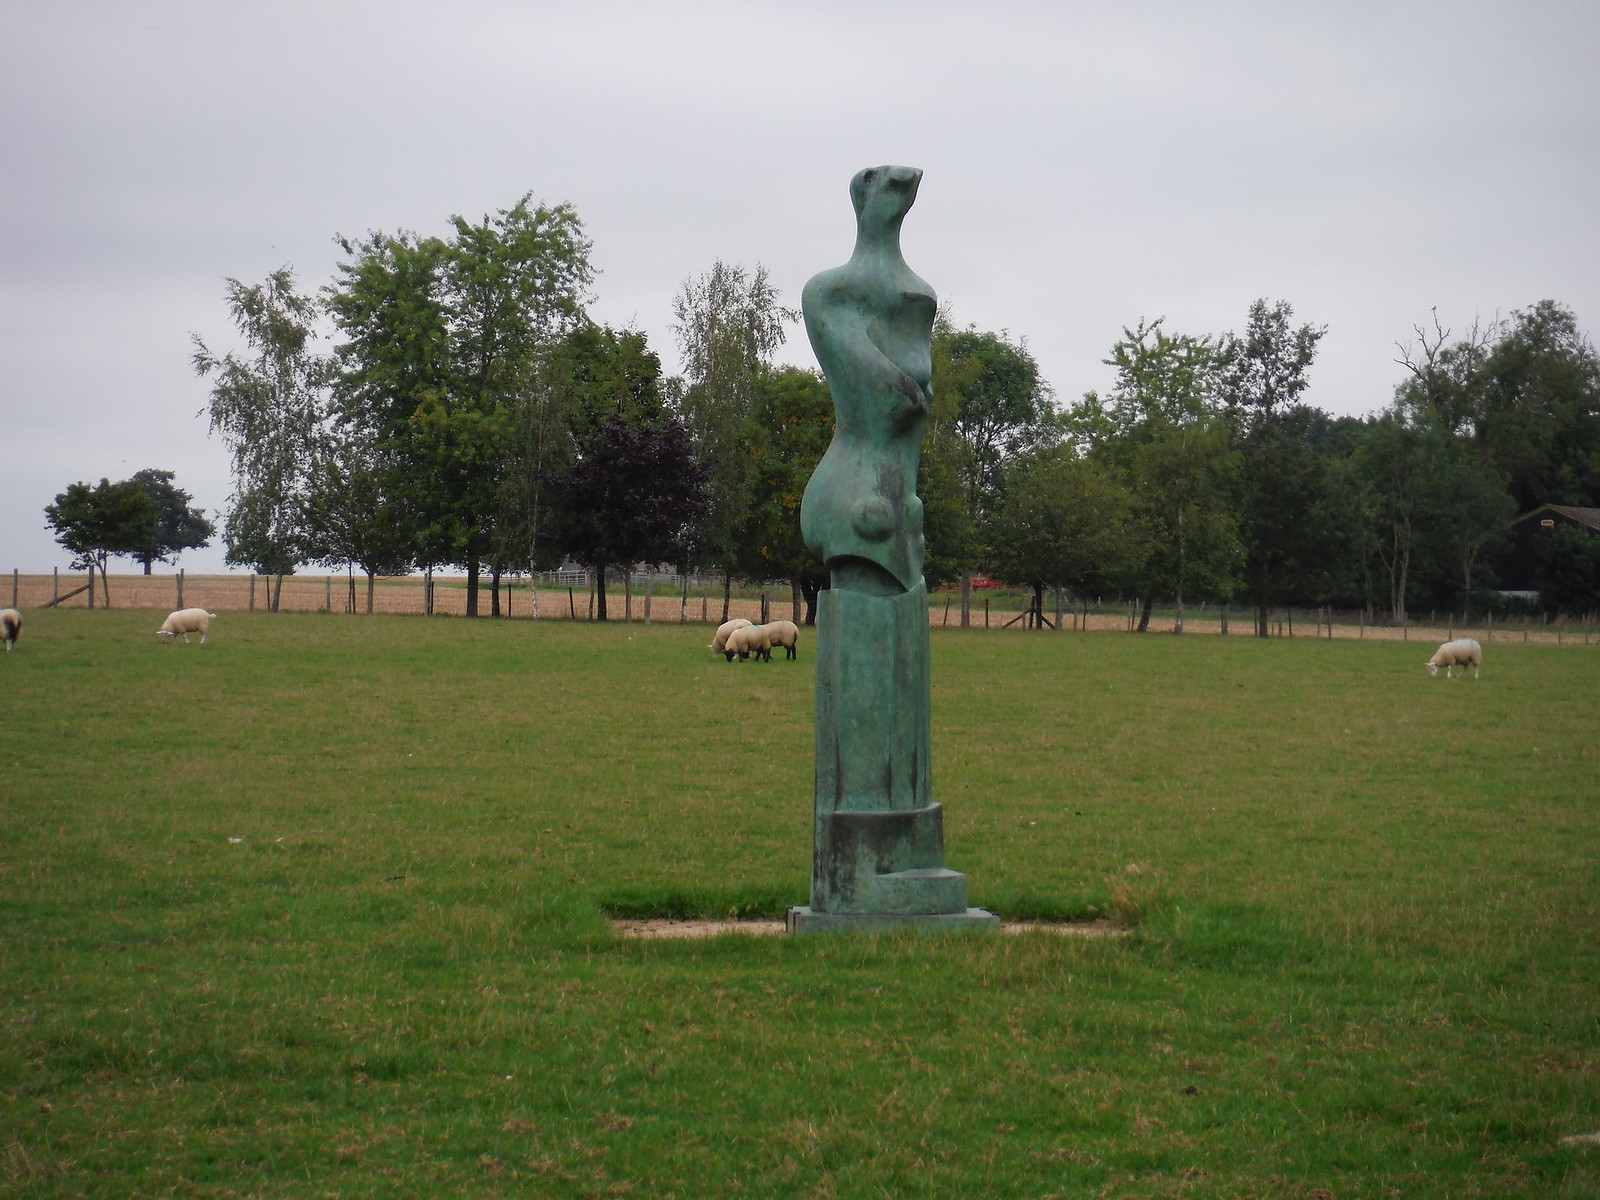 Upright Motive No. 9 (1979) SWC Walk 164 Roydon to Sawbridgeworth via Henry Moore Foundation